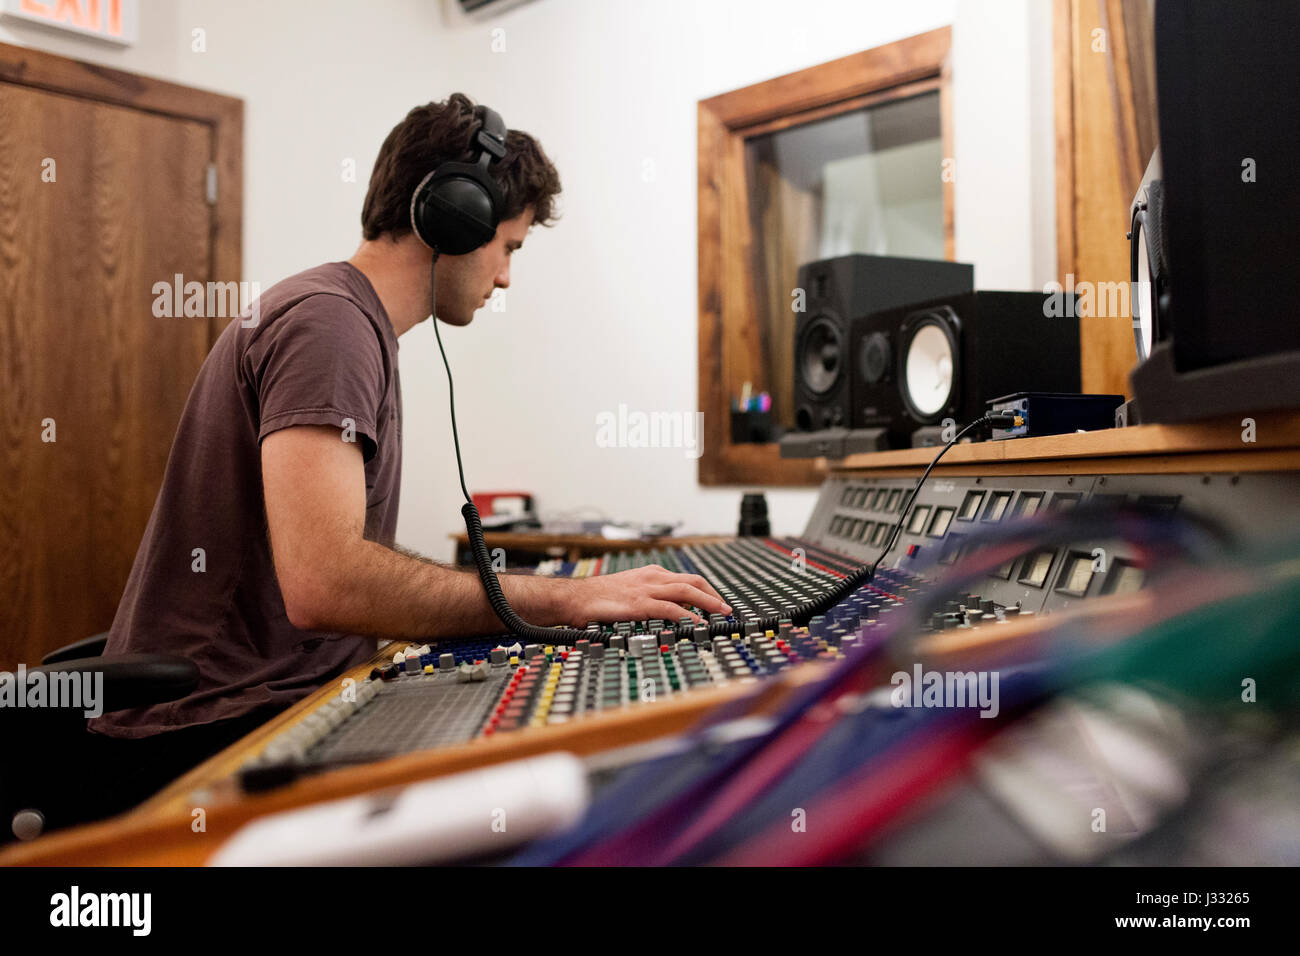 Audio engineer working at an instrument panel - Stock Image